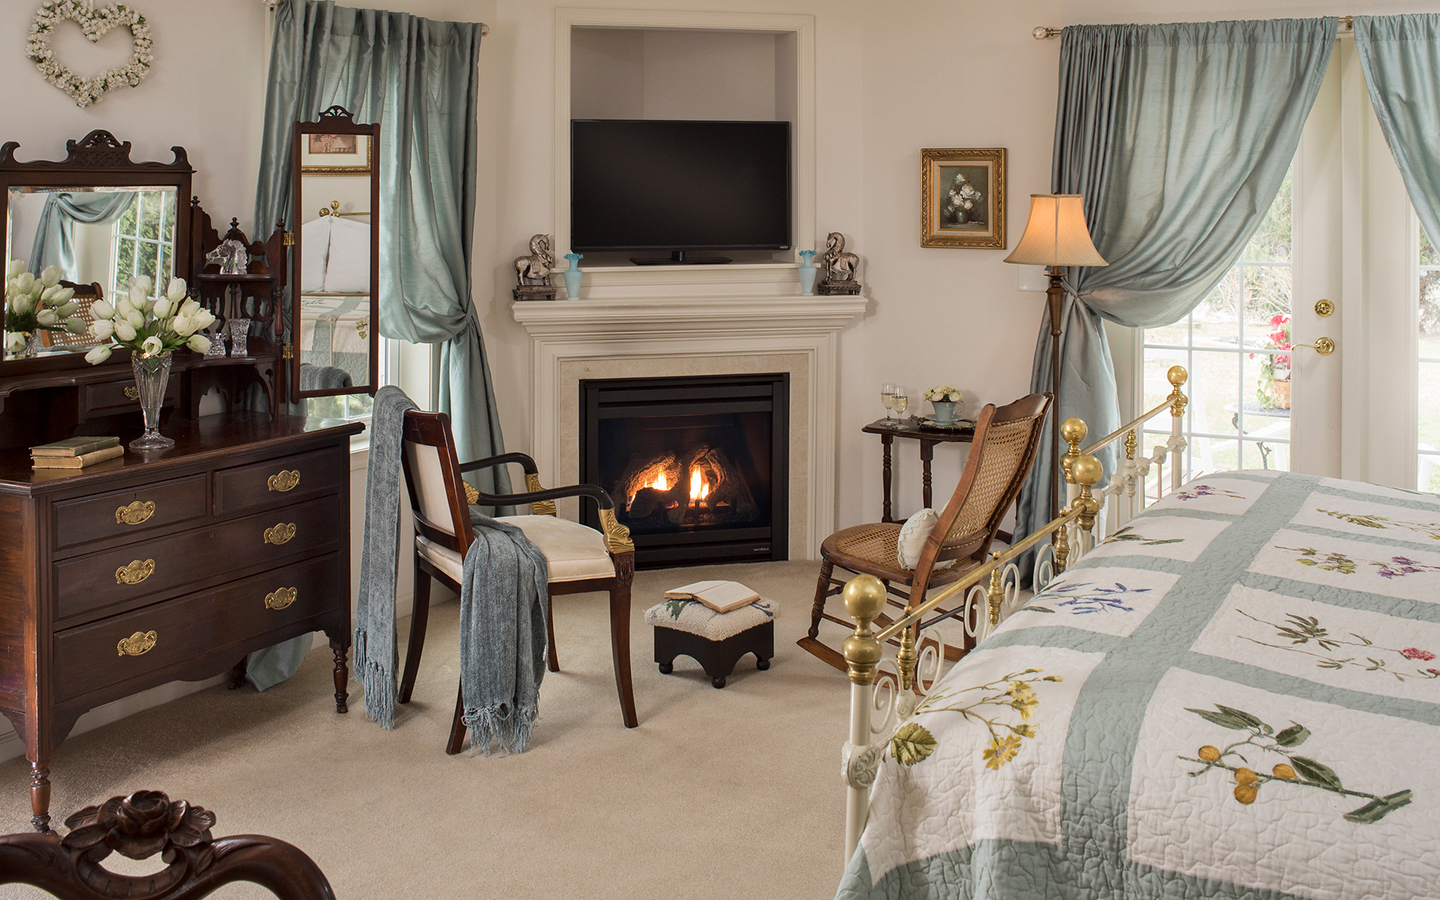 Sitting area with antique chairs, book, wine, and fireplace by quilted bed